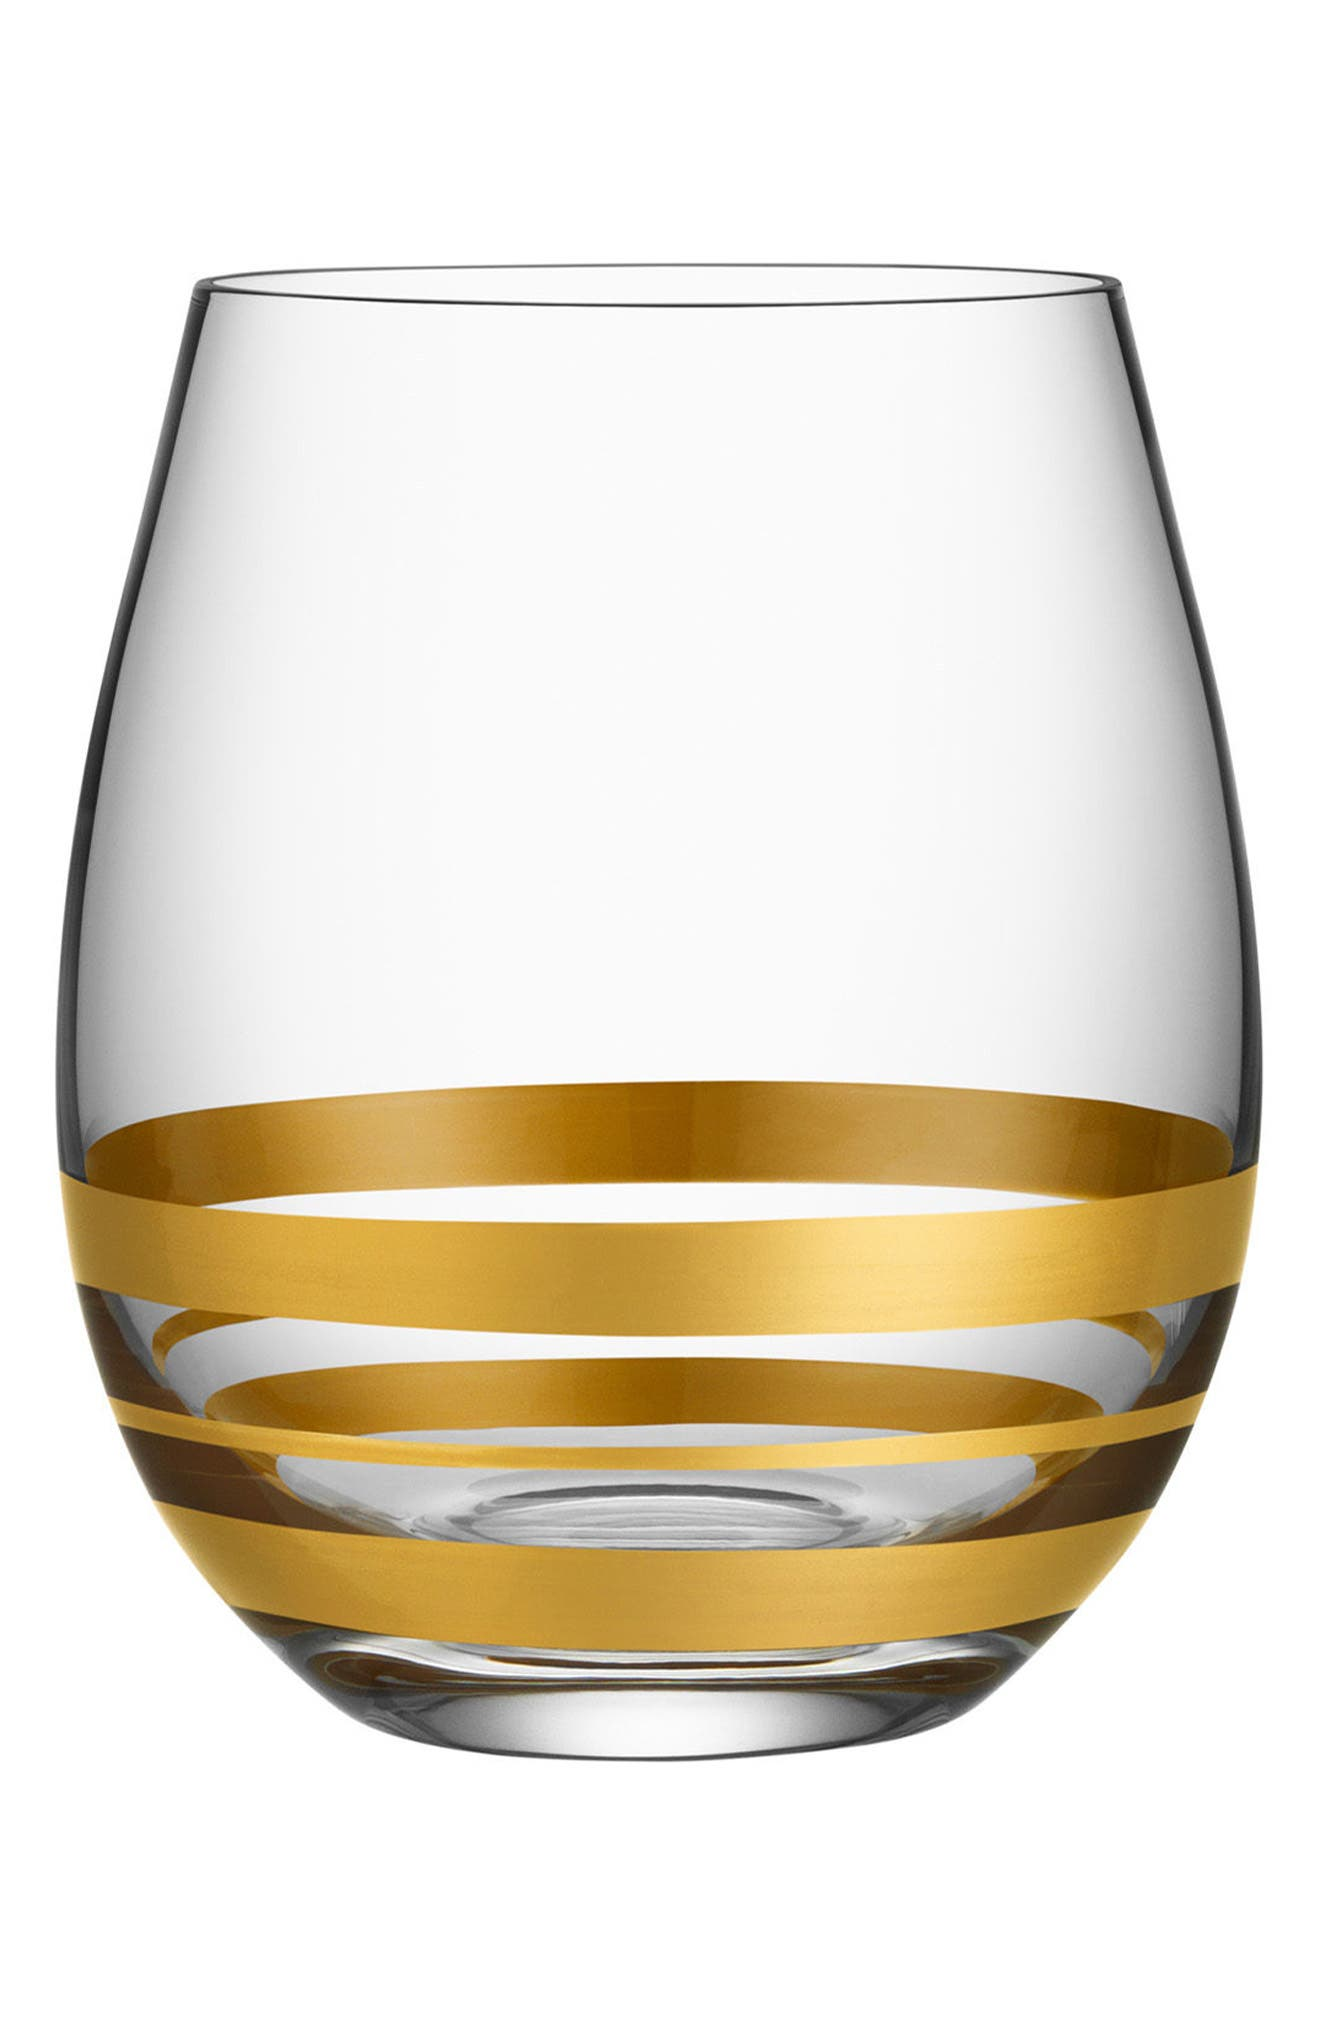 Alternate Image 1 Selected - Orrefors Morberg Collection Set of 4 Crystal Tumblers (Nordstrom Exclusive)